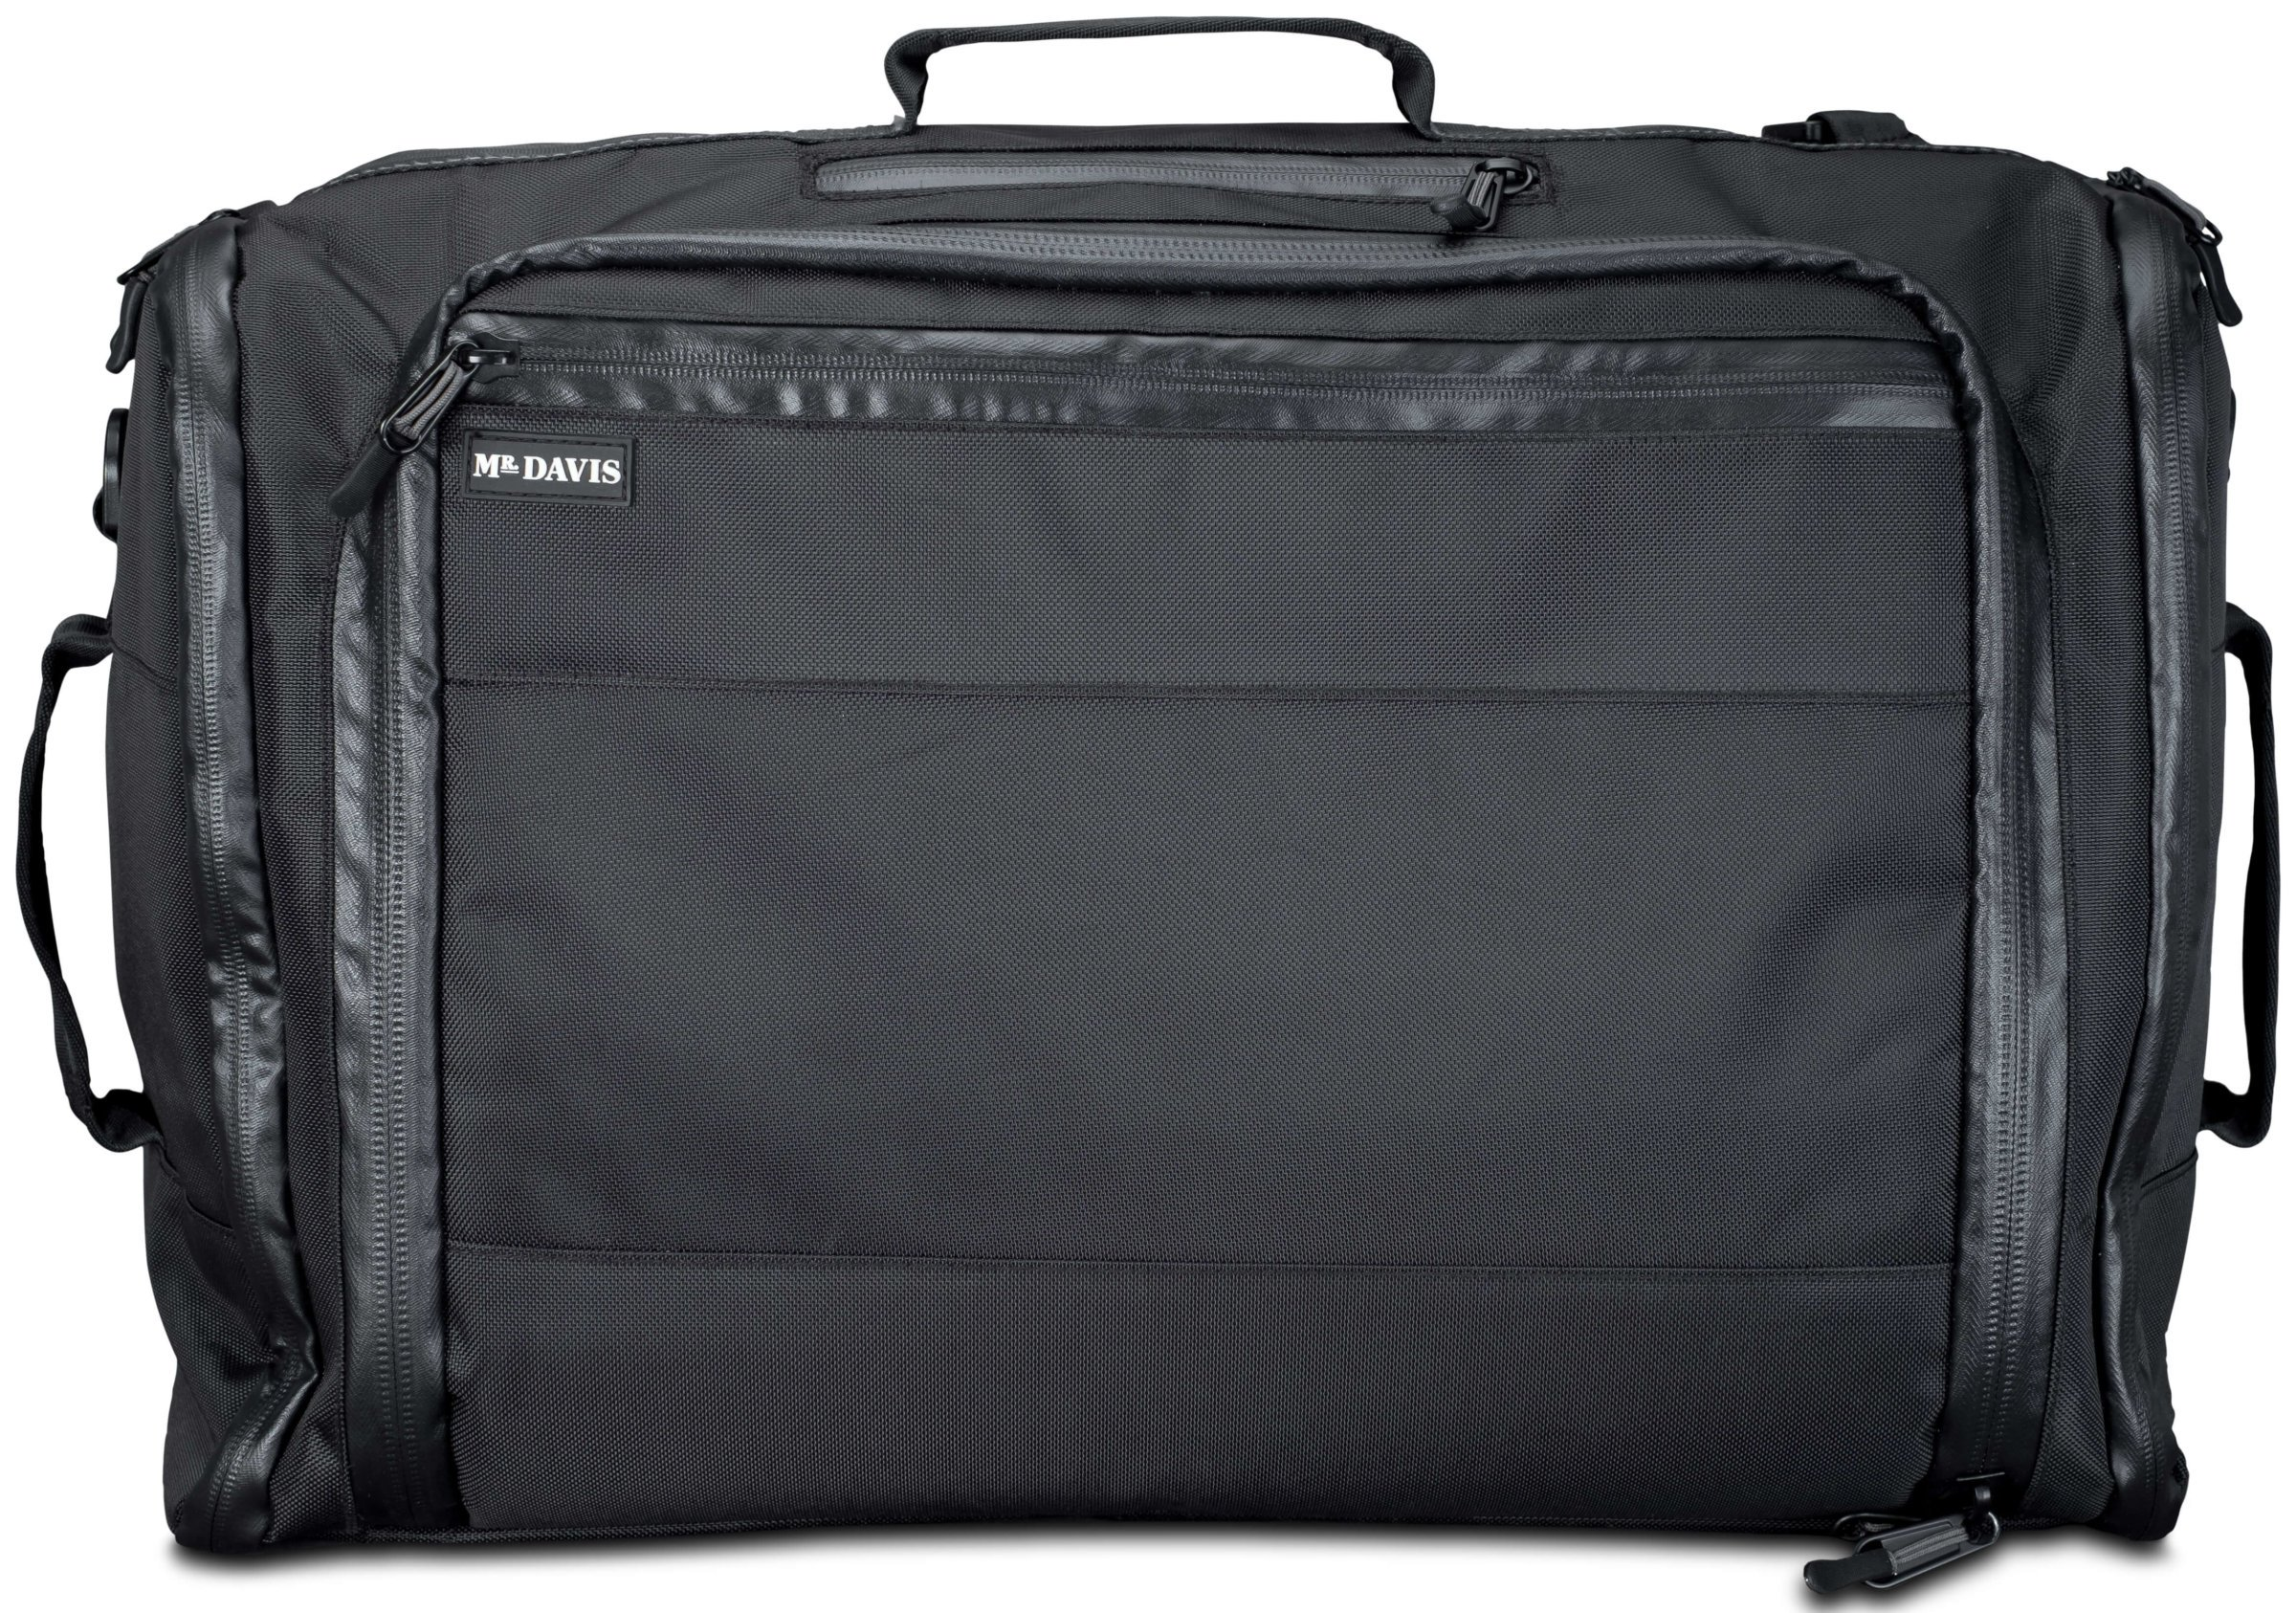 Mr. Davis Continuum One-Bag Travel Carry On Bag with Backpack Mode